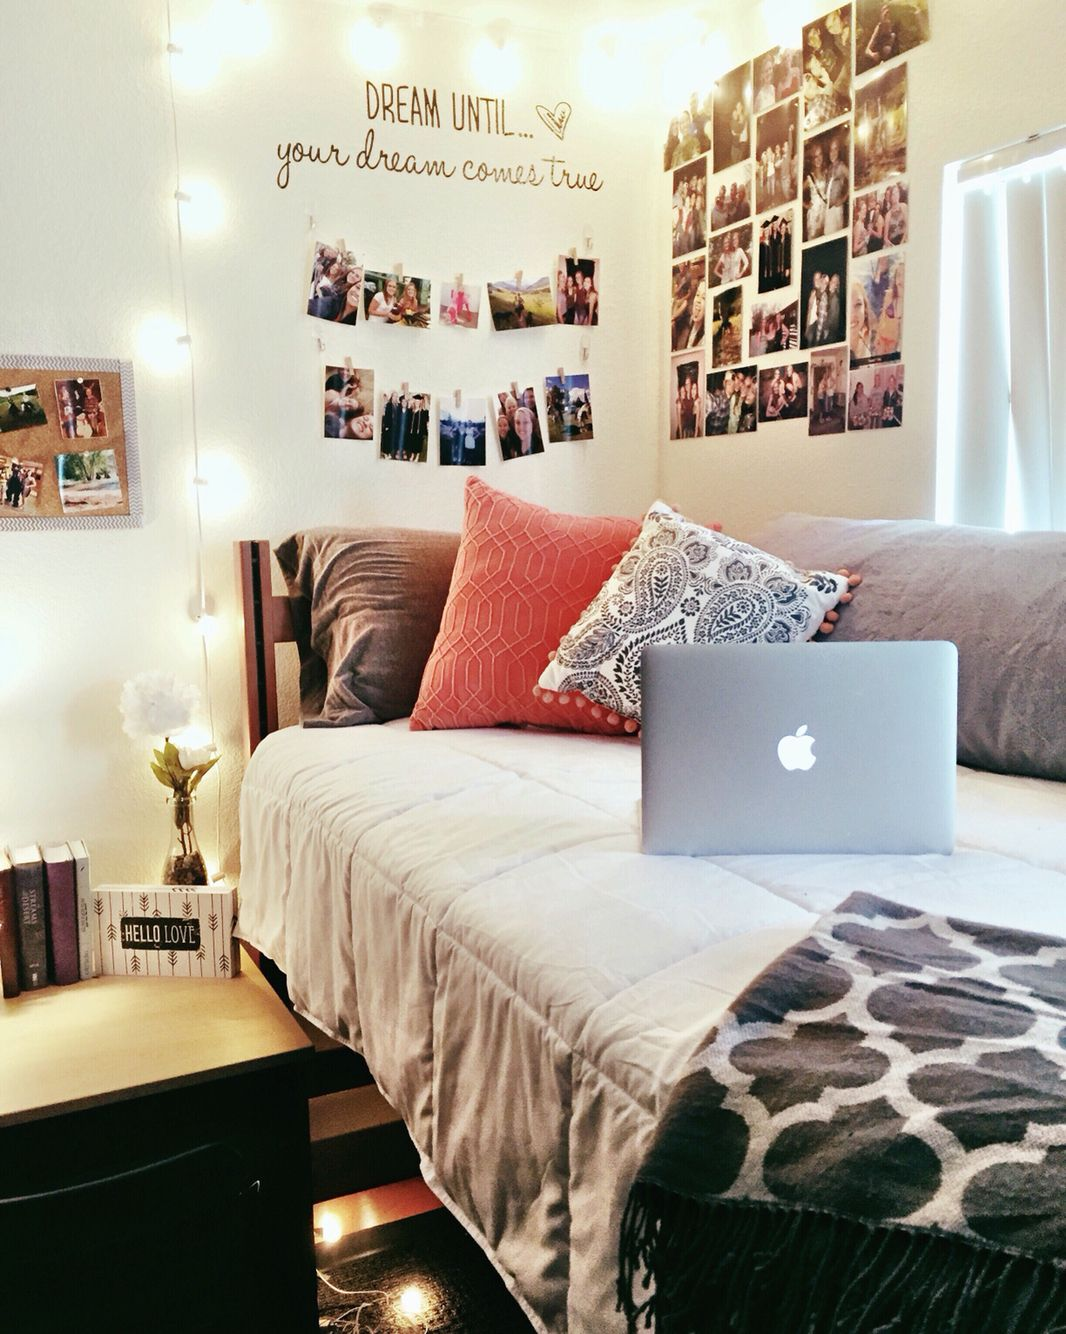 College apartment room ideas for girls - Whether It S Your First Year Of College Or You Re Moving Back Onto Campus There Will Always Be Plenty Of Ways To Transform Your Room To